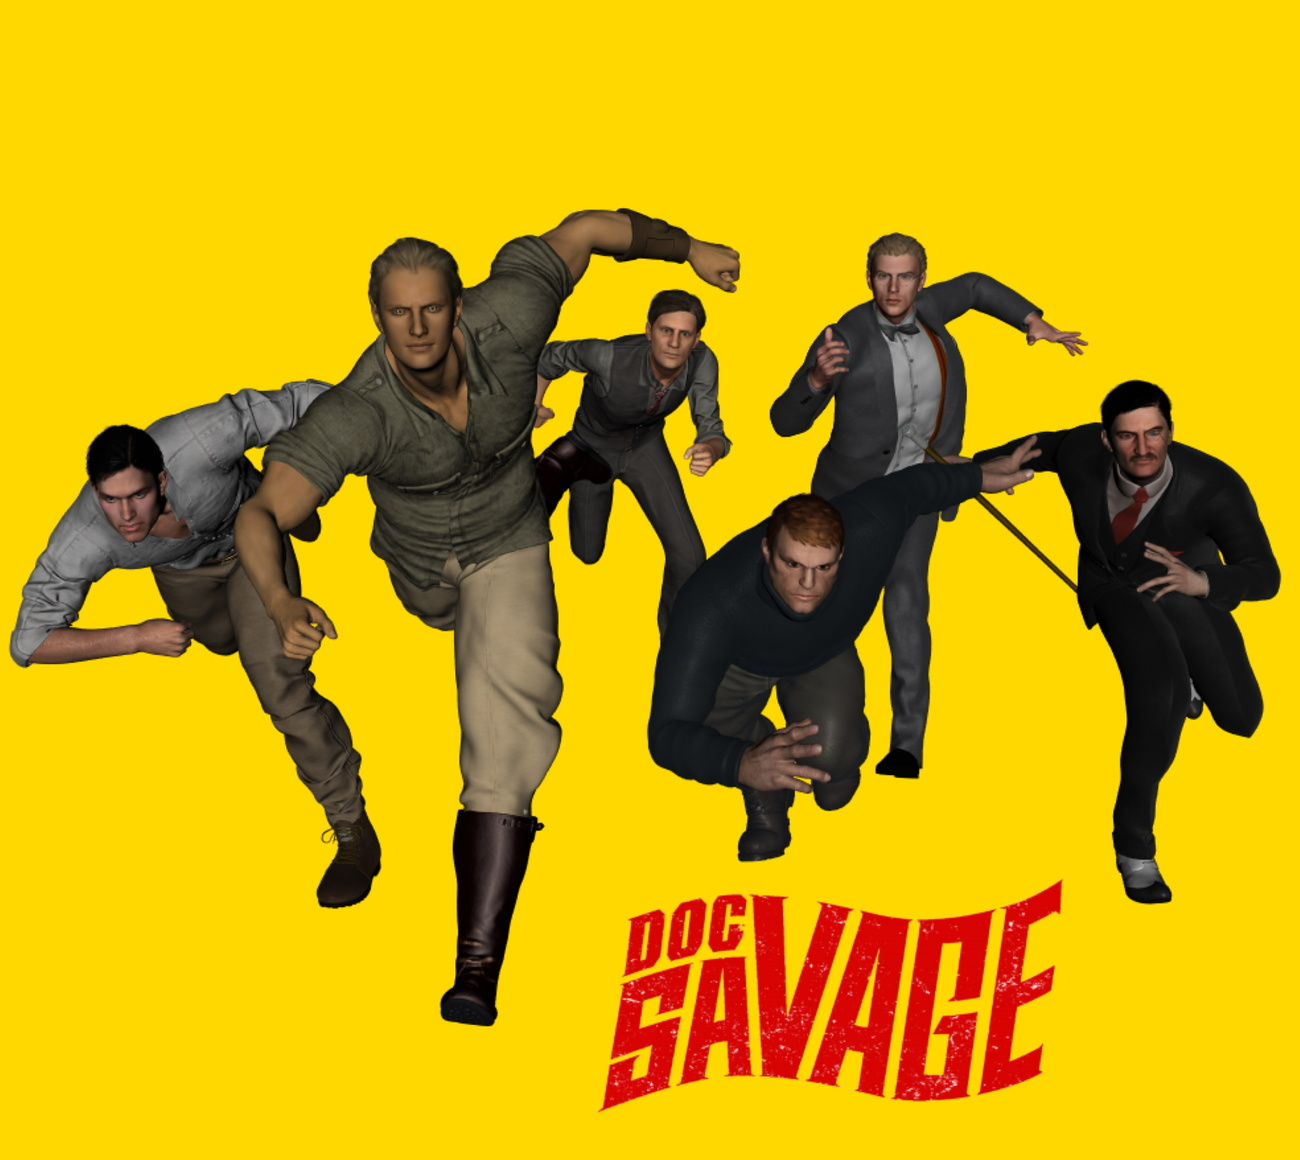 More DOC SAVAGE by praedane